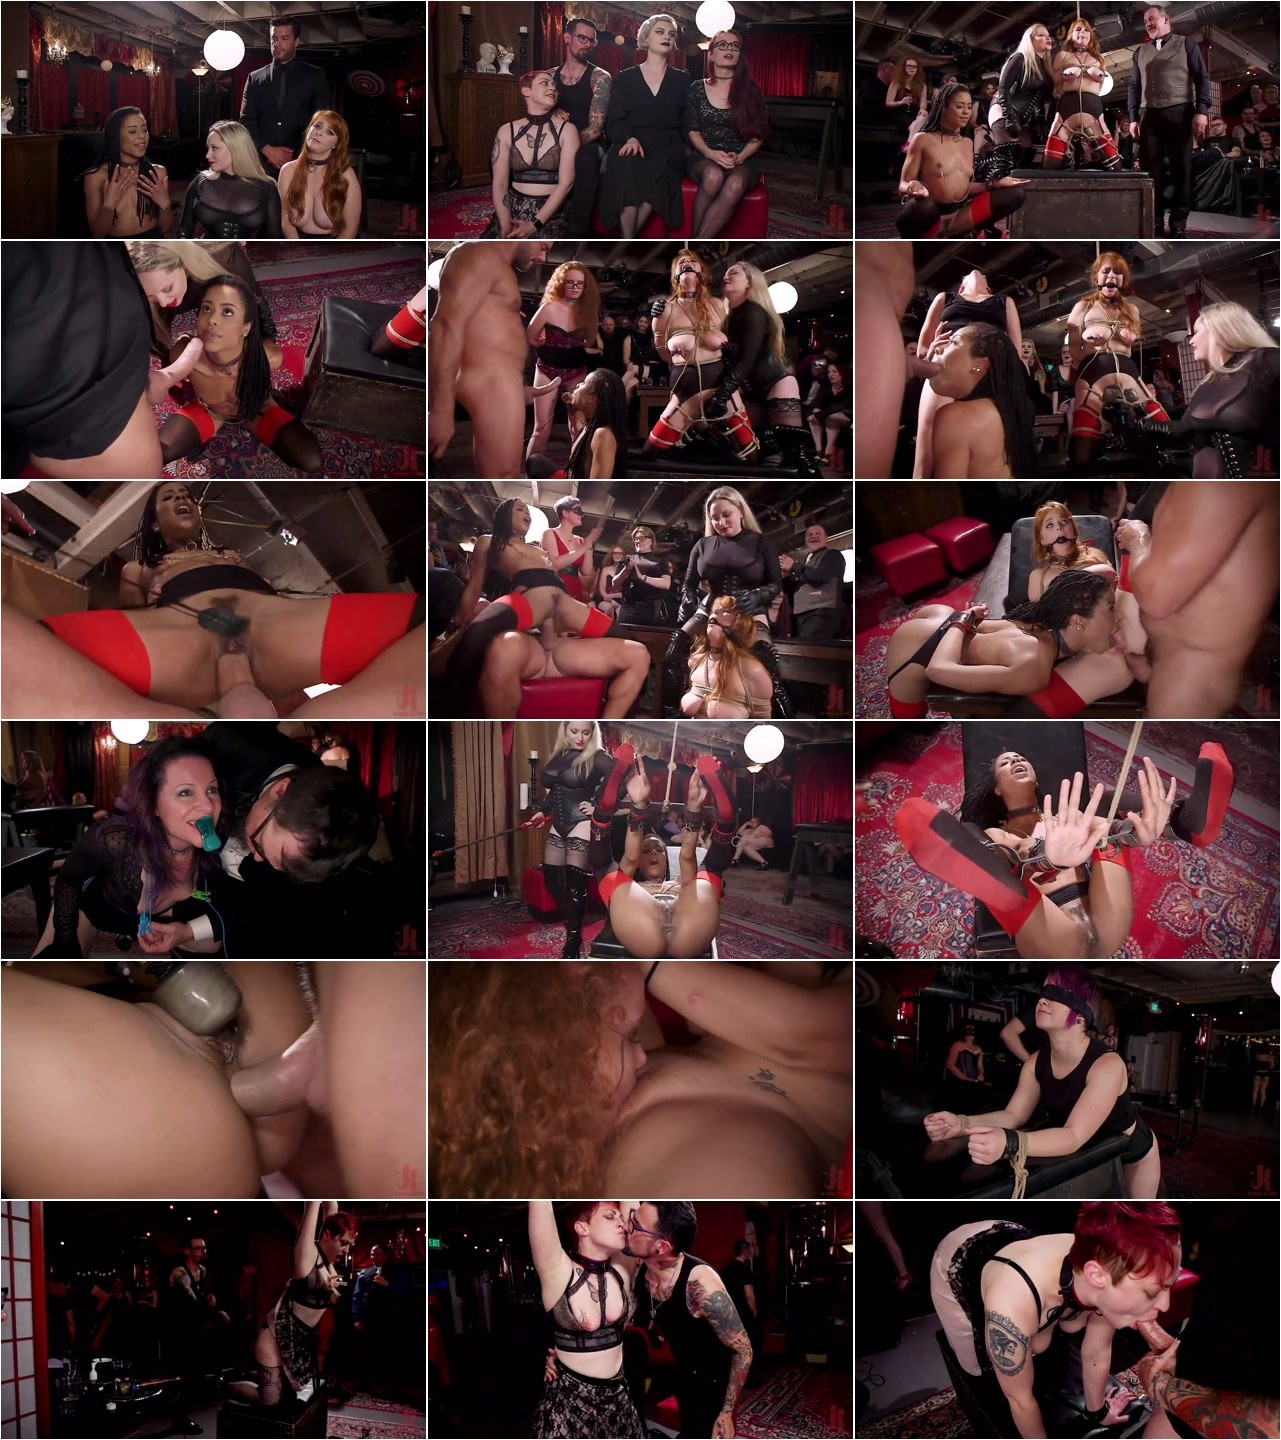 Aiden Starr, Kira Noir, Penny Pax - The Selfish Anal Slut and The Selfless Electro Servant.mp4